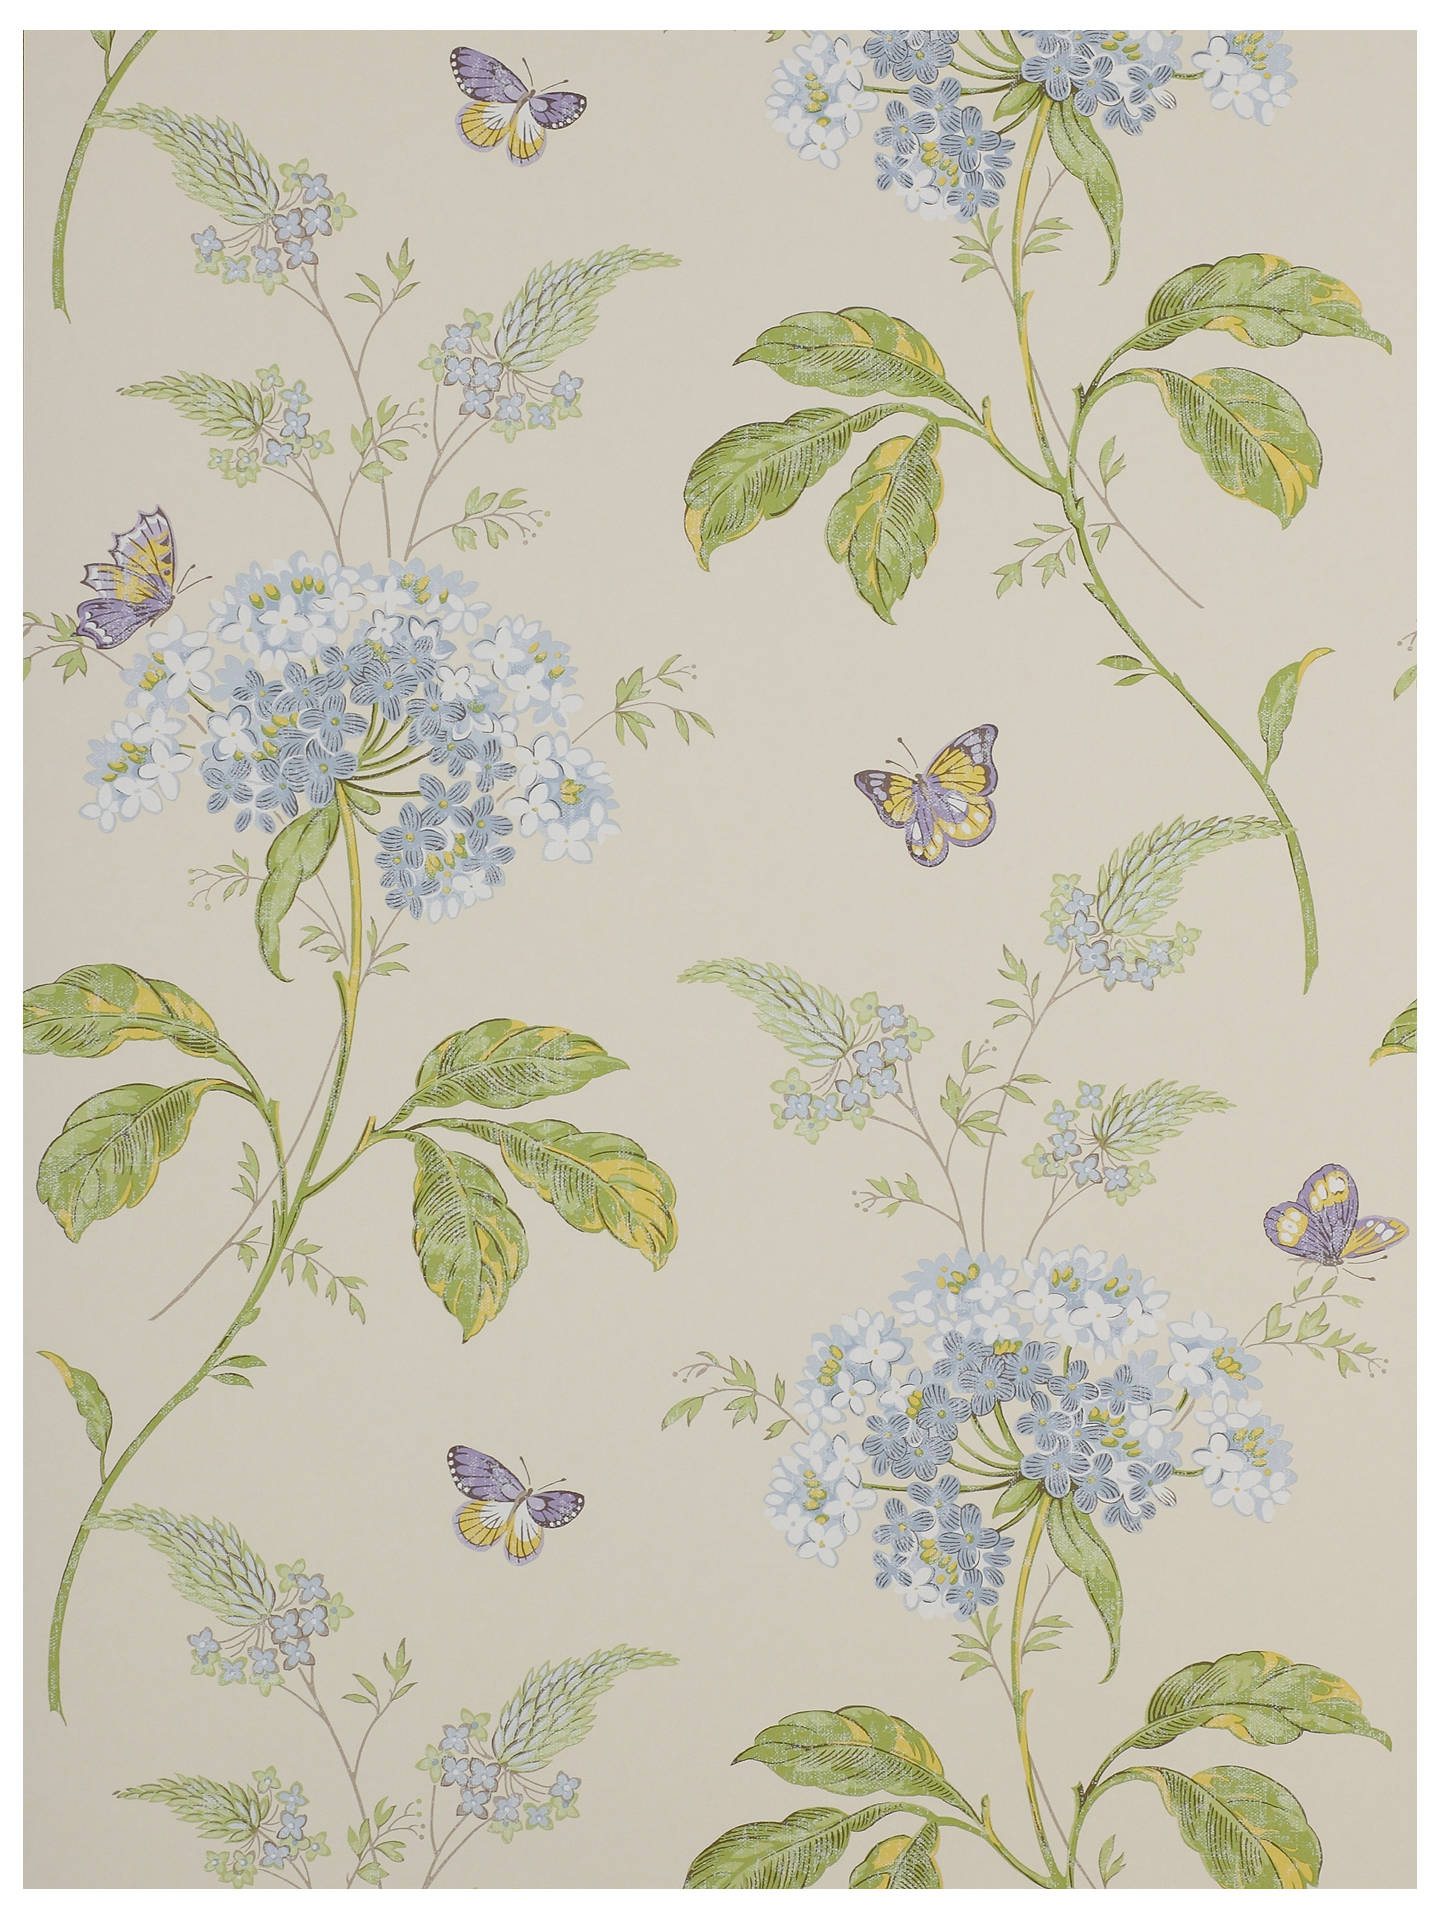 Buy Colefax and Fowler Messina Wallpaper, Blue / Green, 07132/05 Online at johnlewis.com